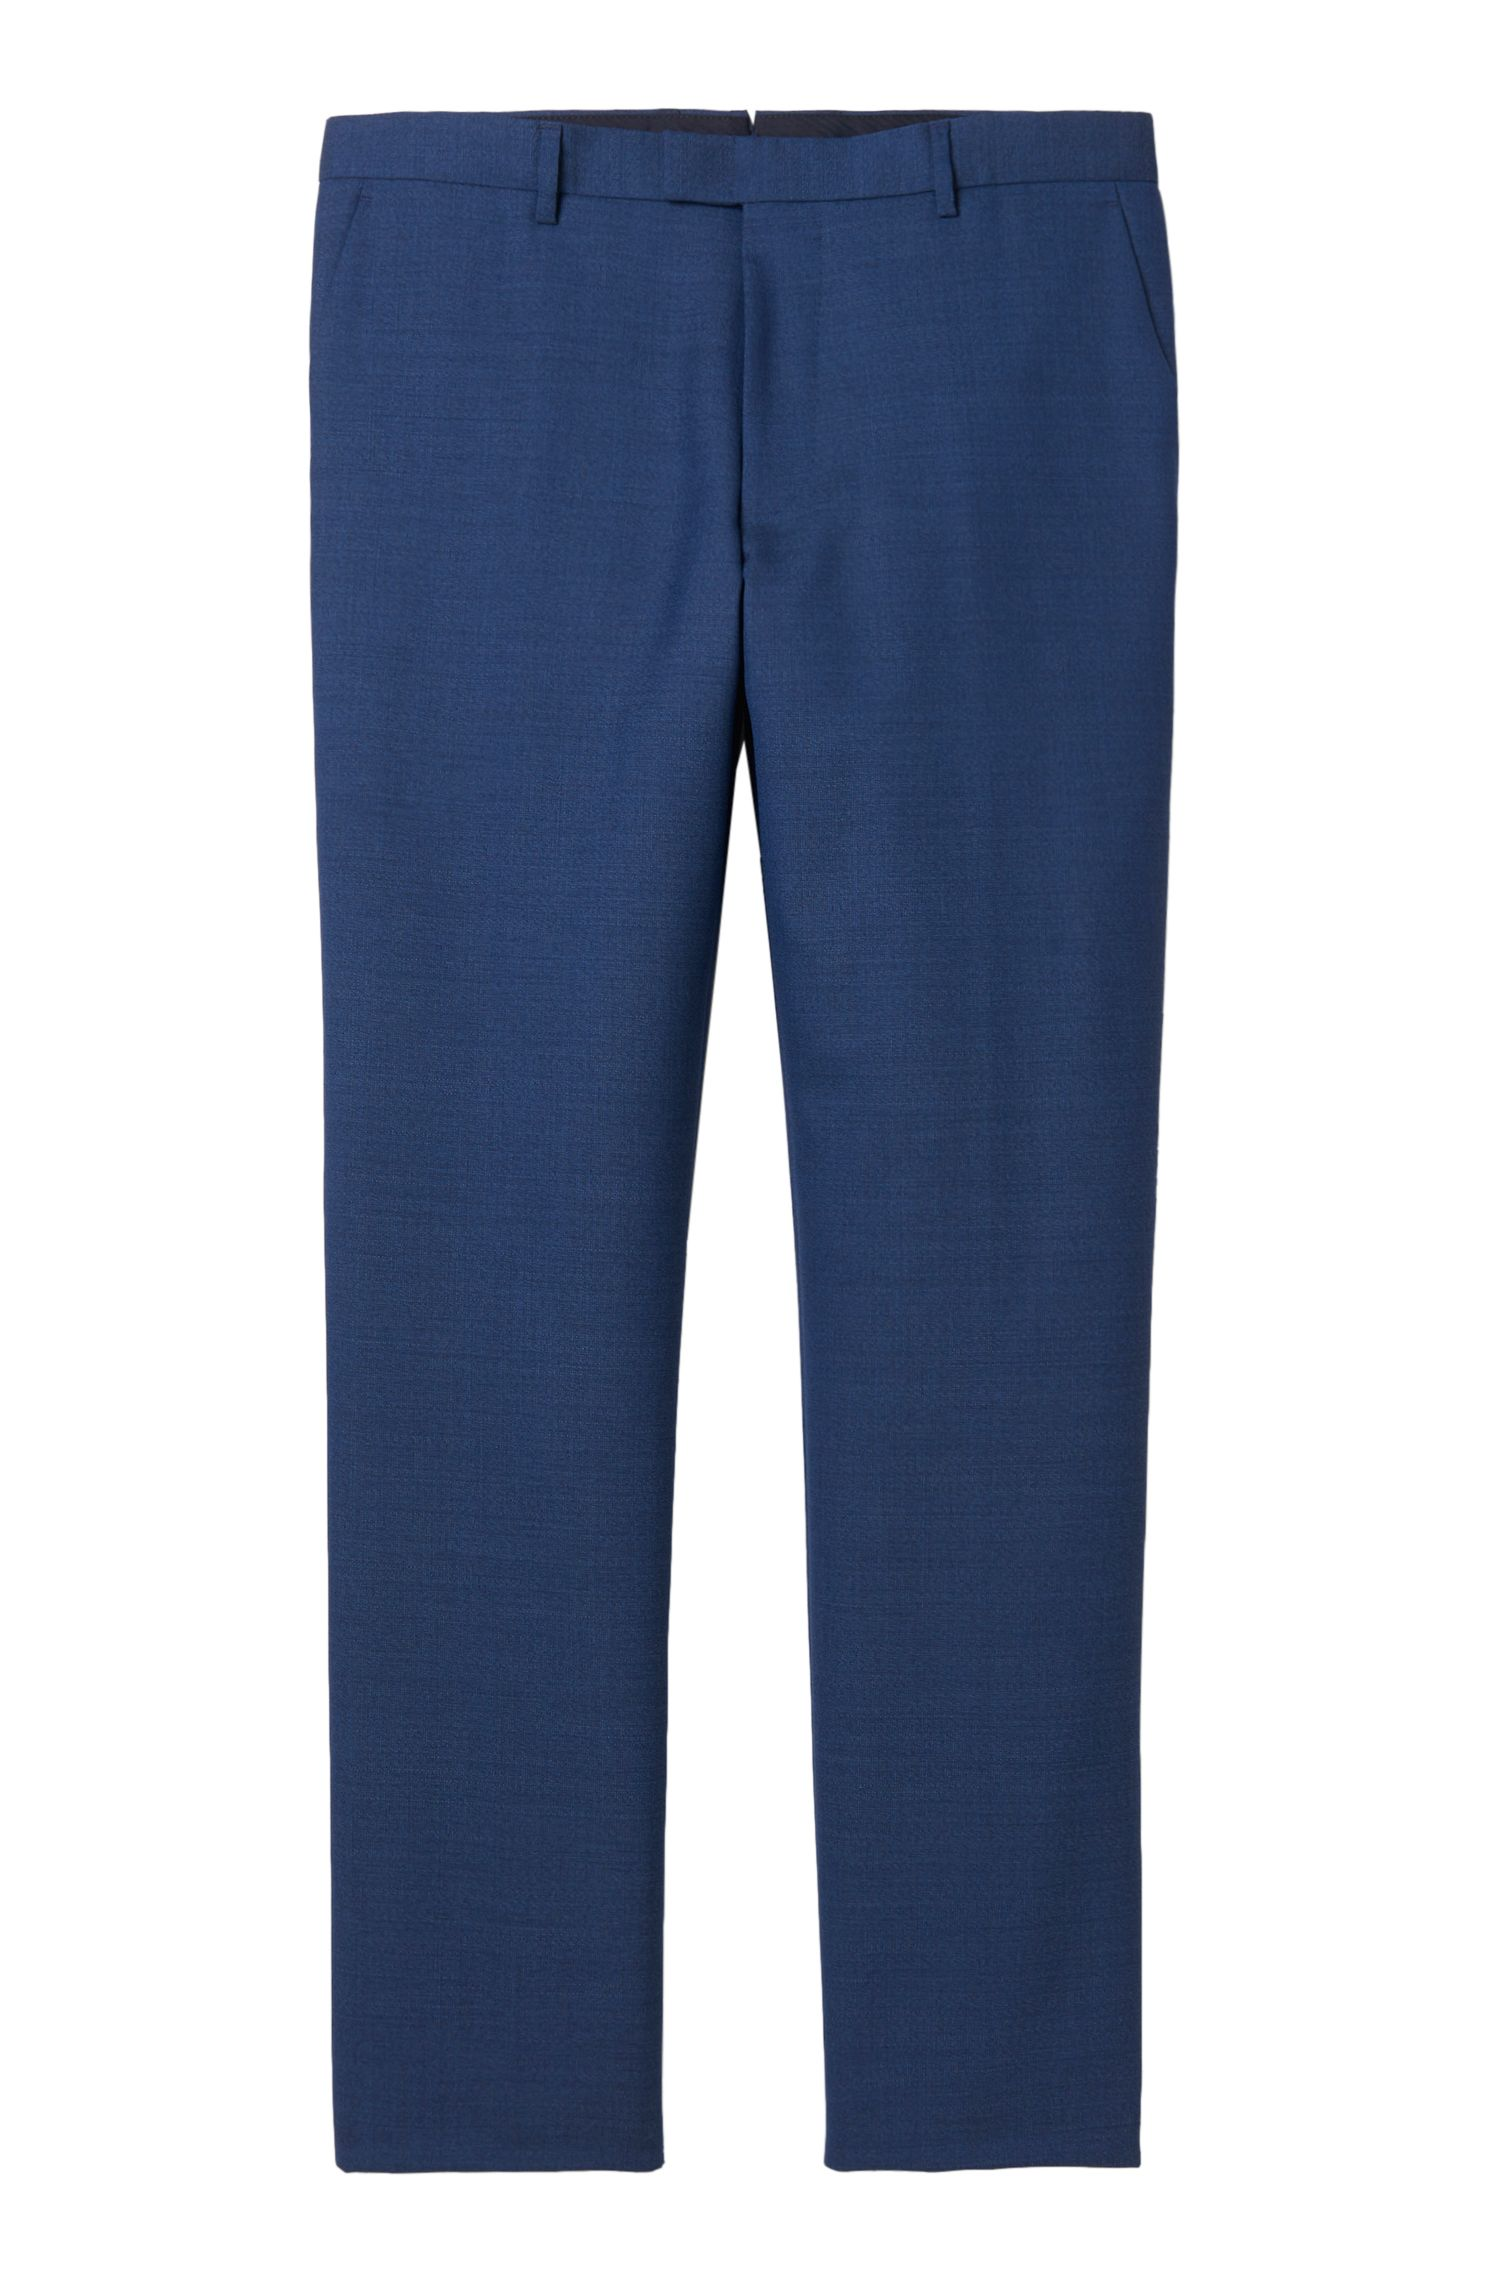 Virgin Wool Dress Pant, Regular Fit | T-Lones, Dark Blue